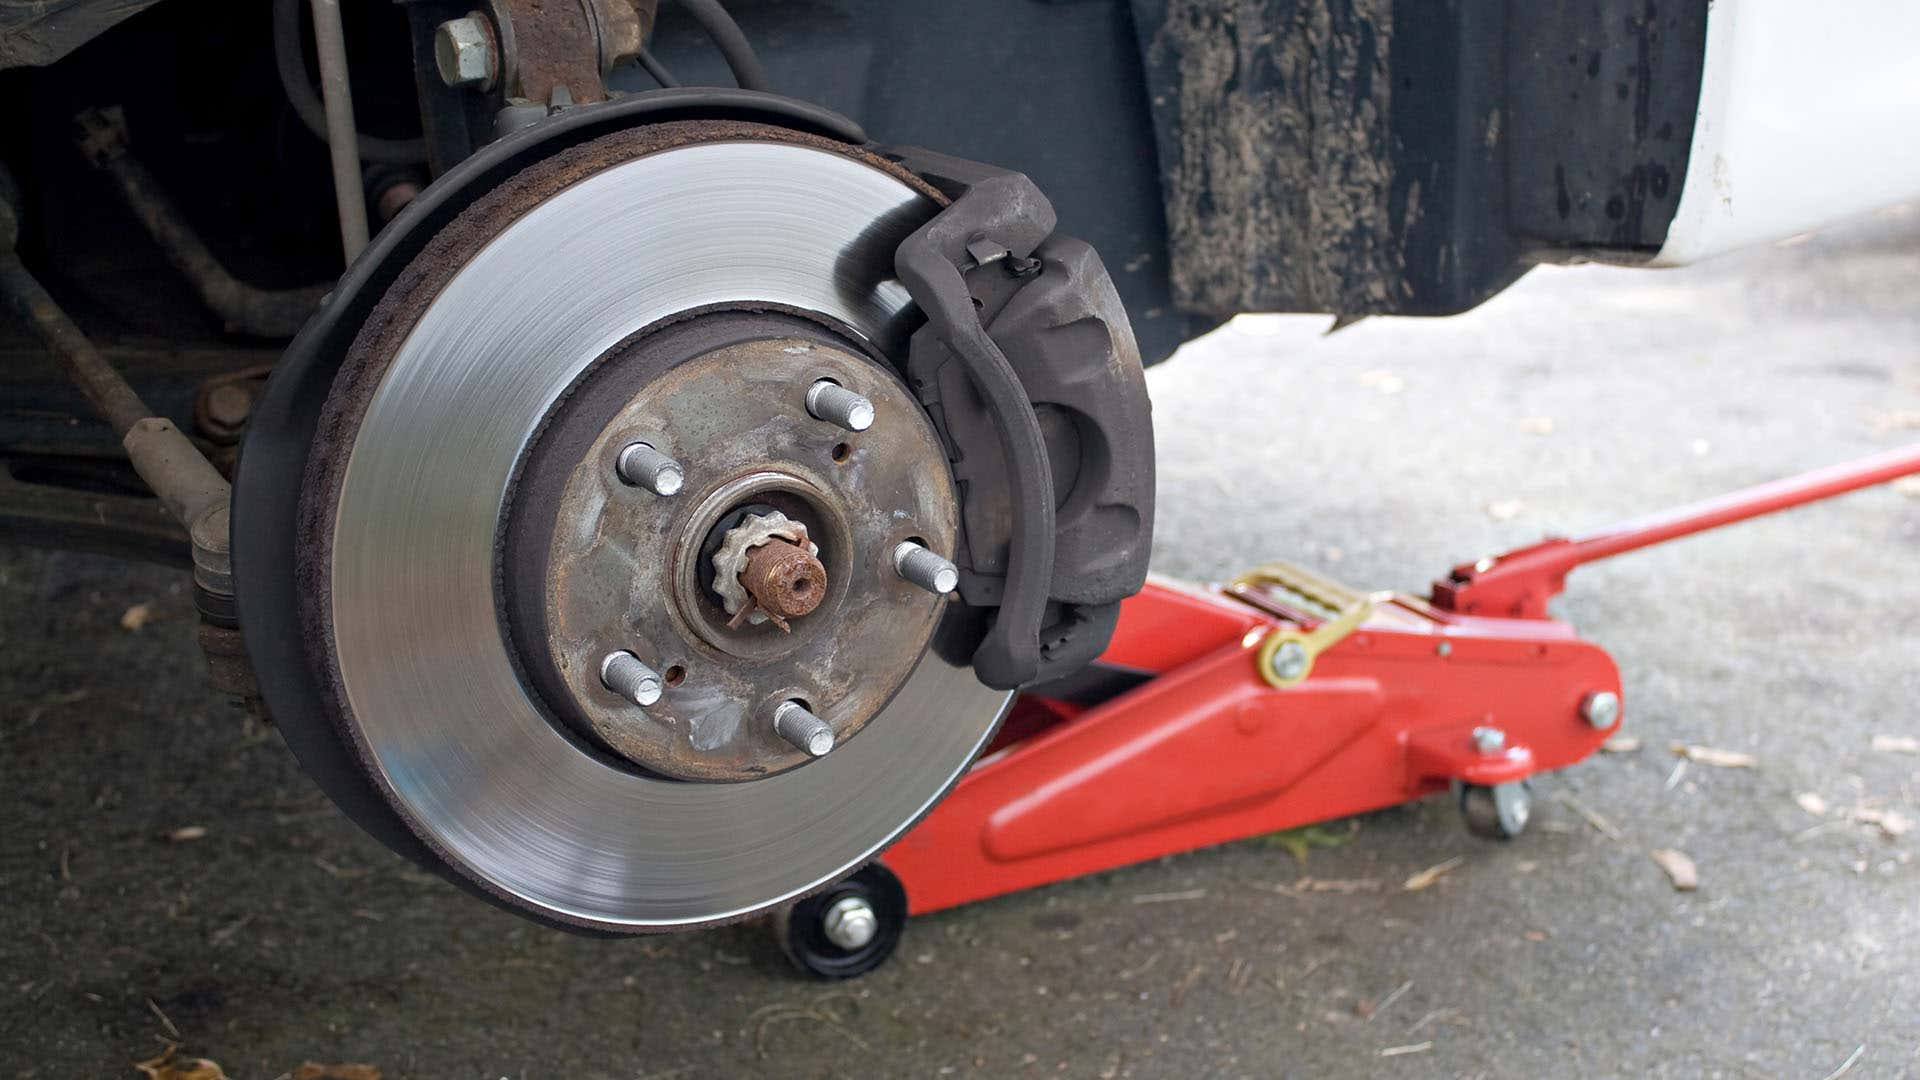 Disc brakes use a caliper to press the pad against the rotor to use friction to stop the vehicle.